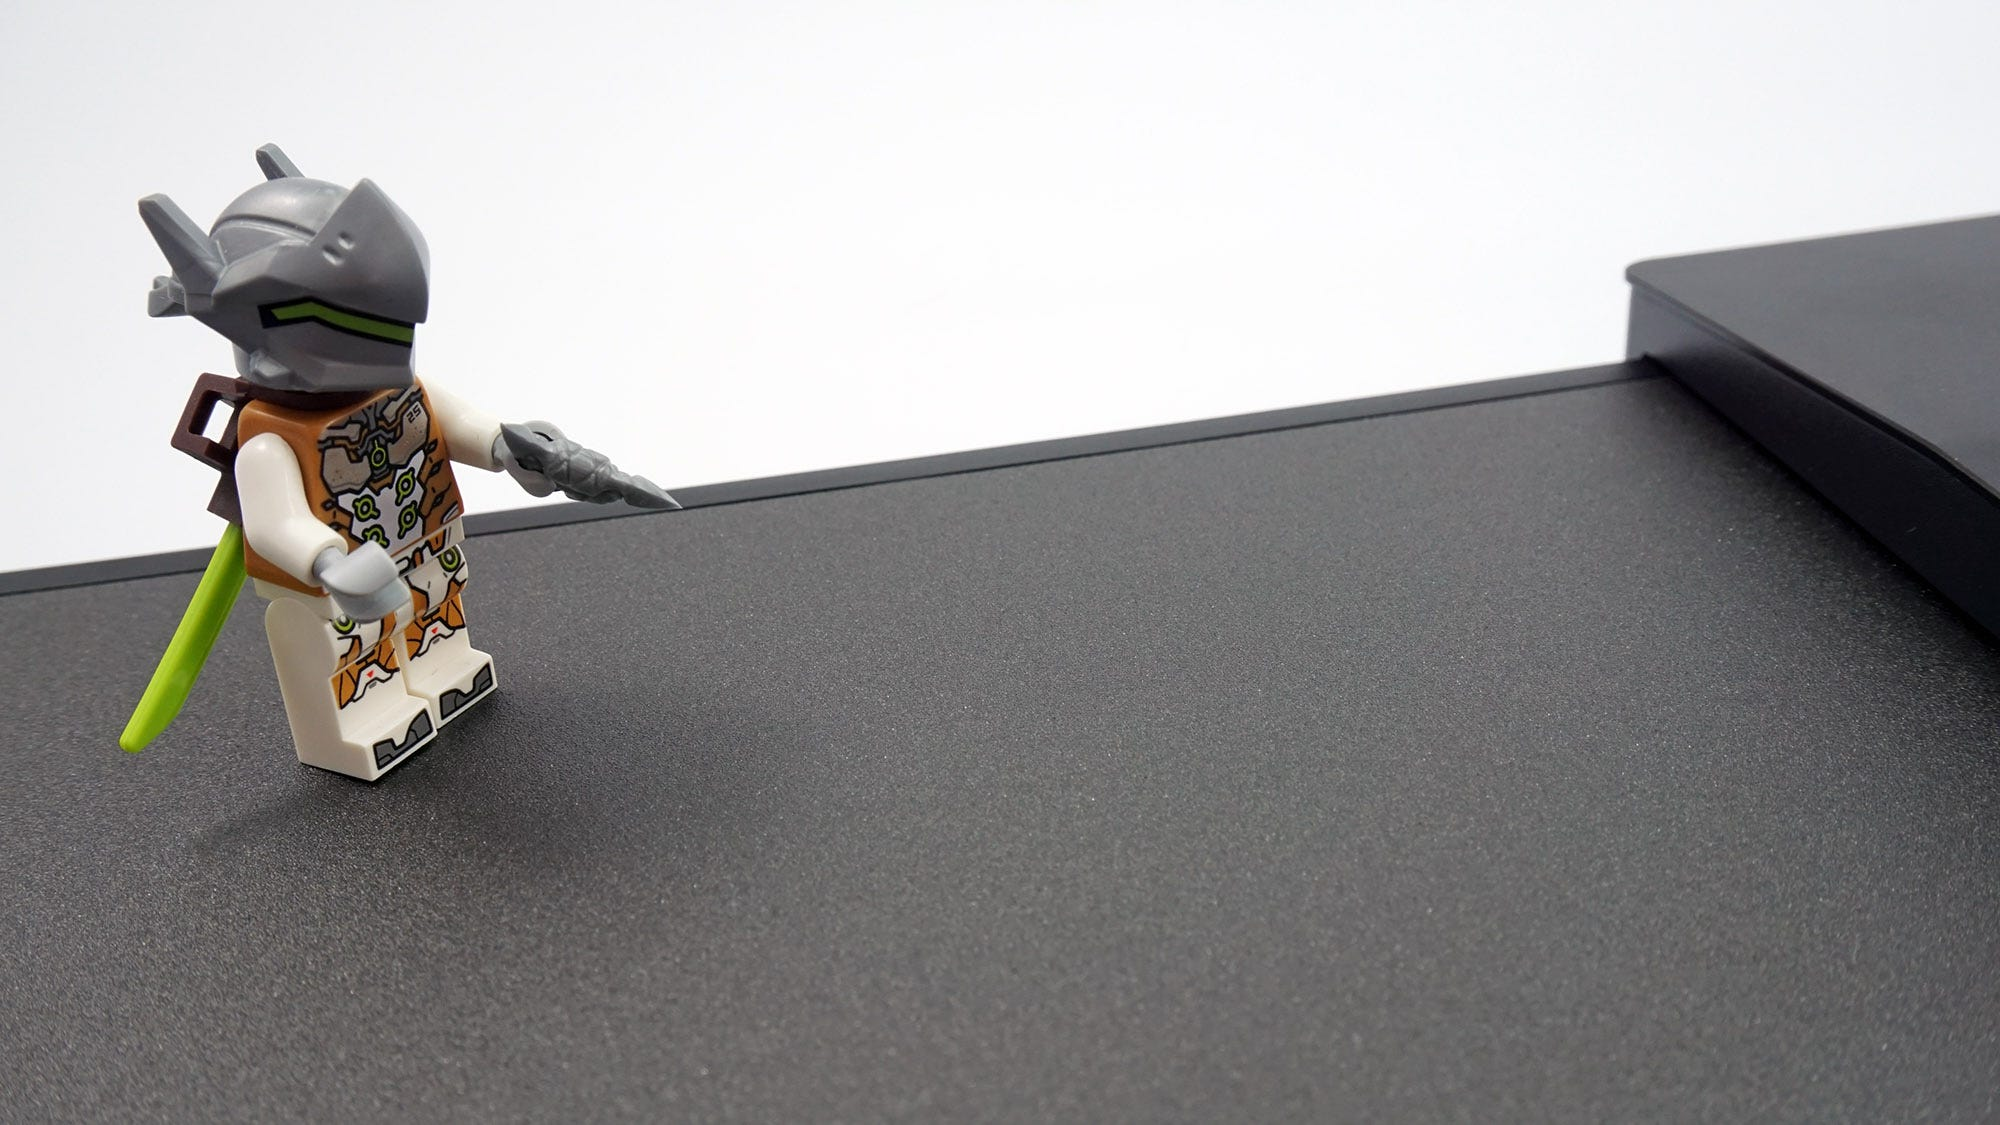 Close-up of an action figure on the Turret mousepad.